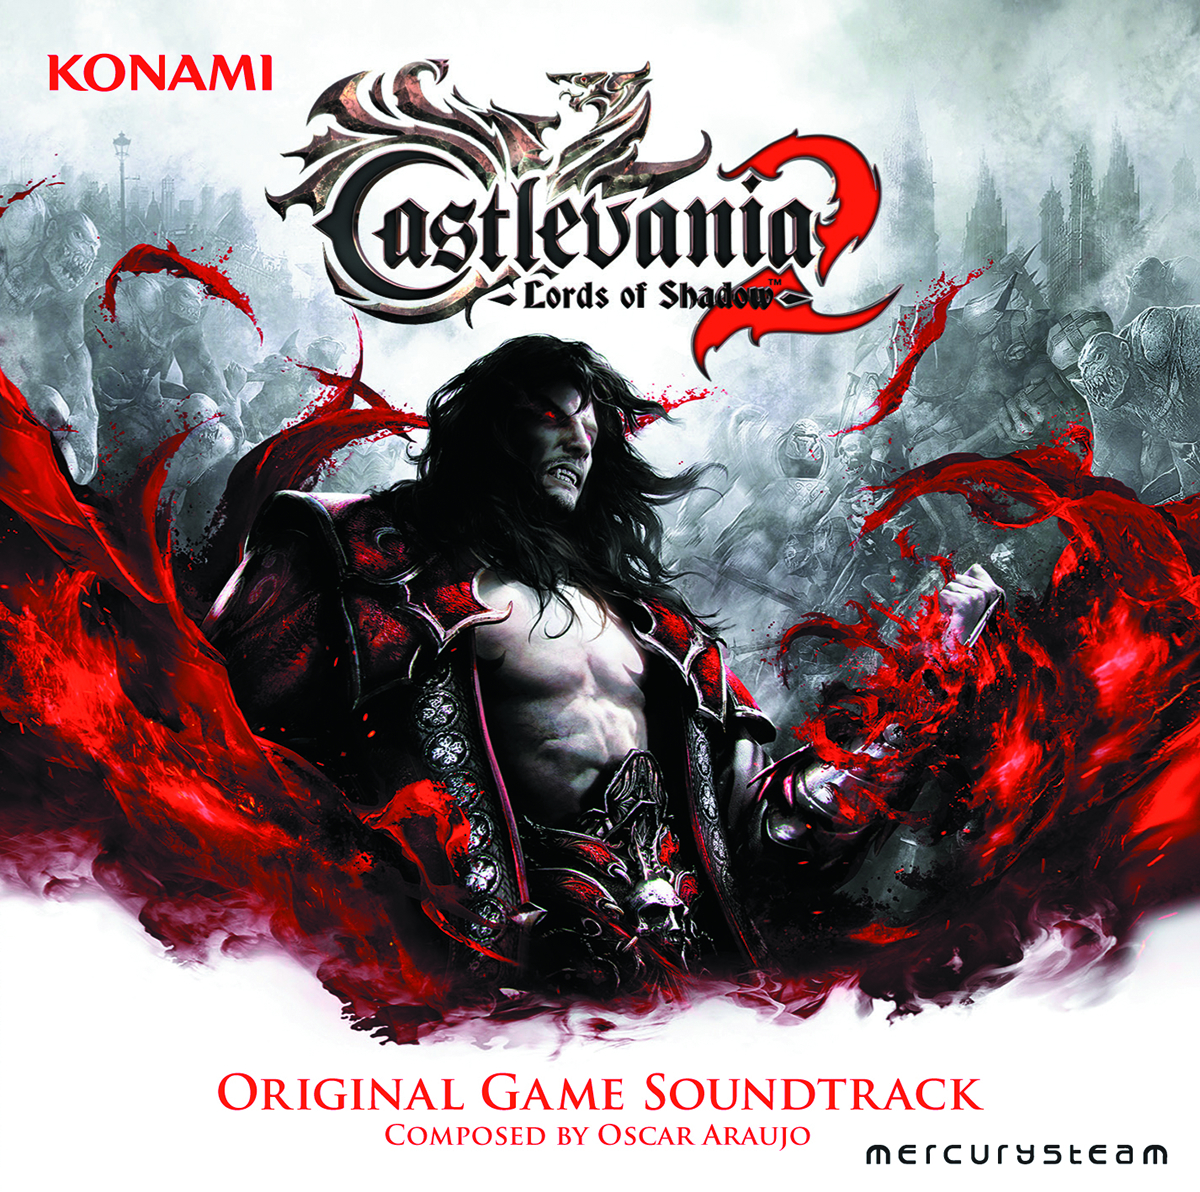 APR142483 - CASTLEVANIA LORDS OF SHADOW 2 OST CD - Previews World